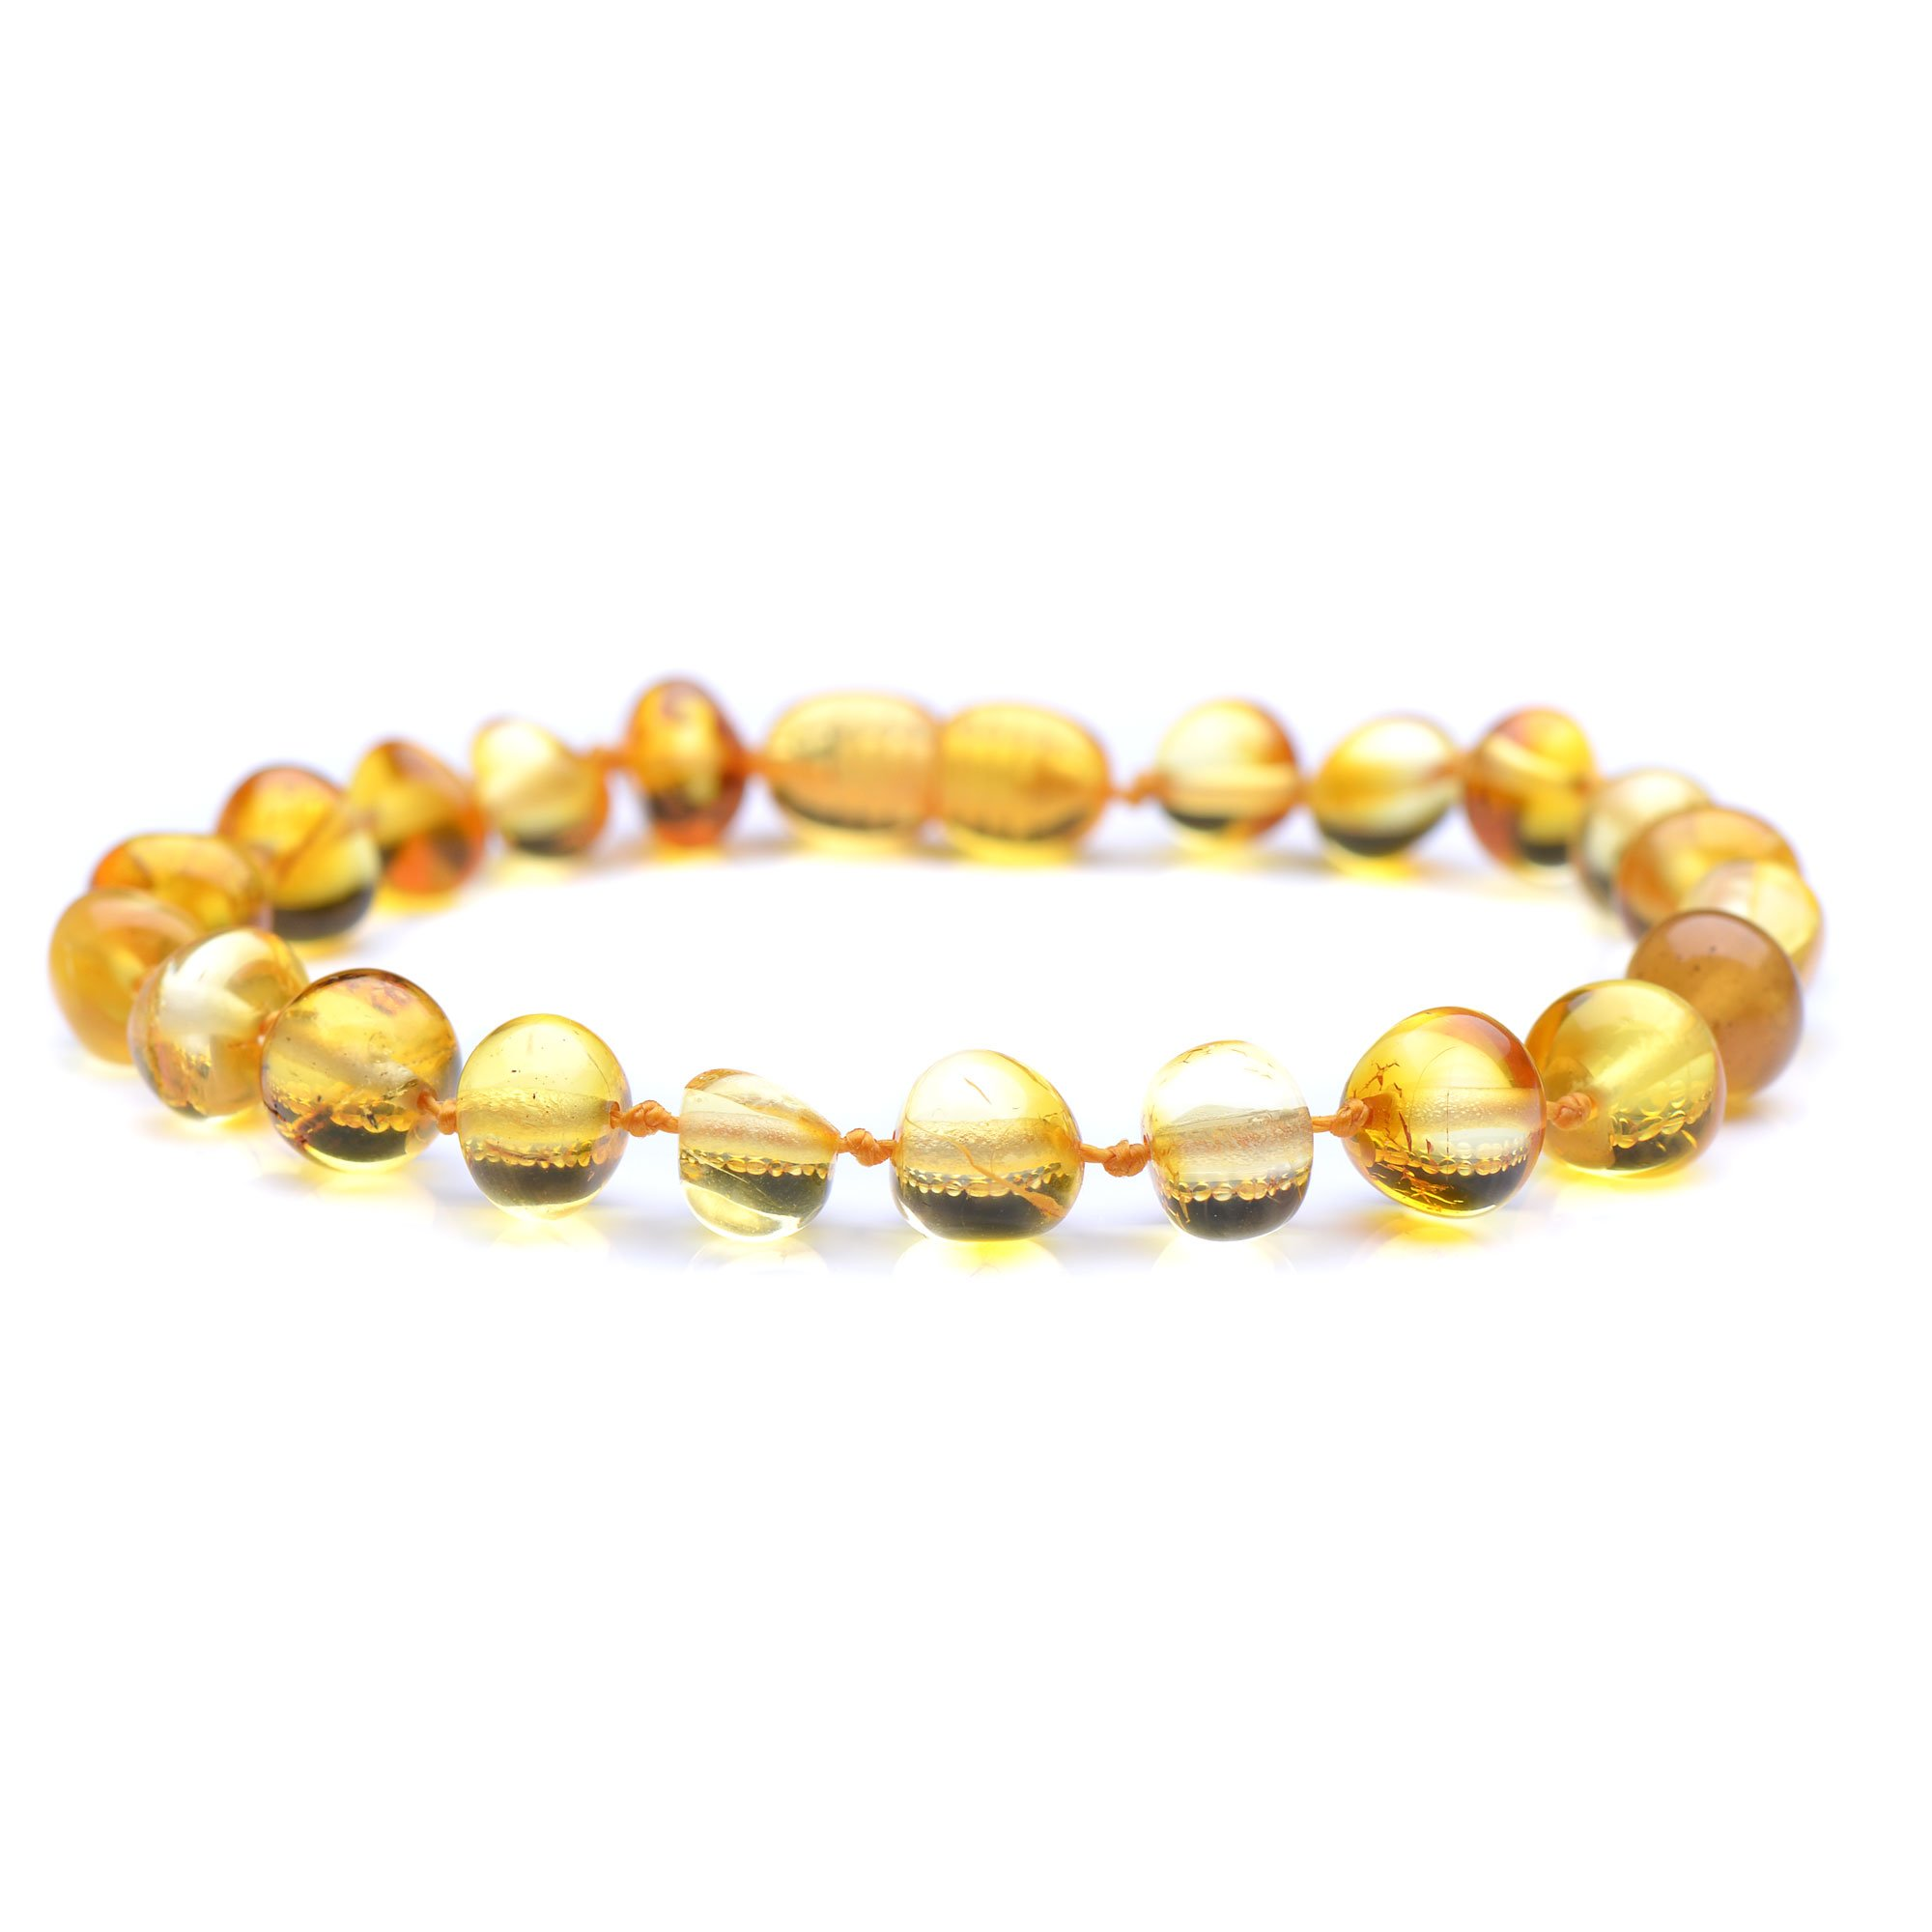 Polished Baltic Amber Bracelet for Adult with A